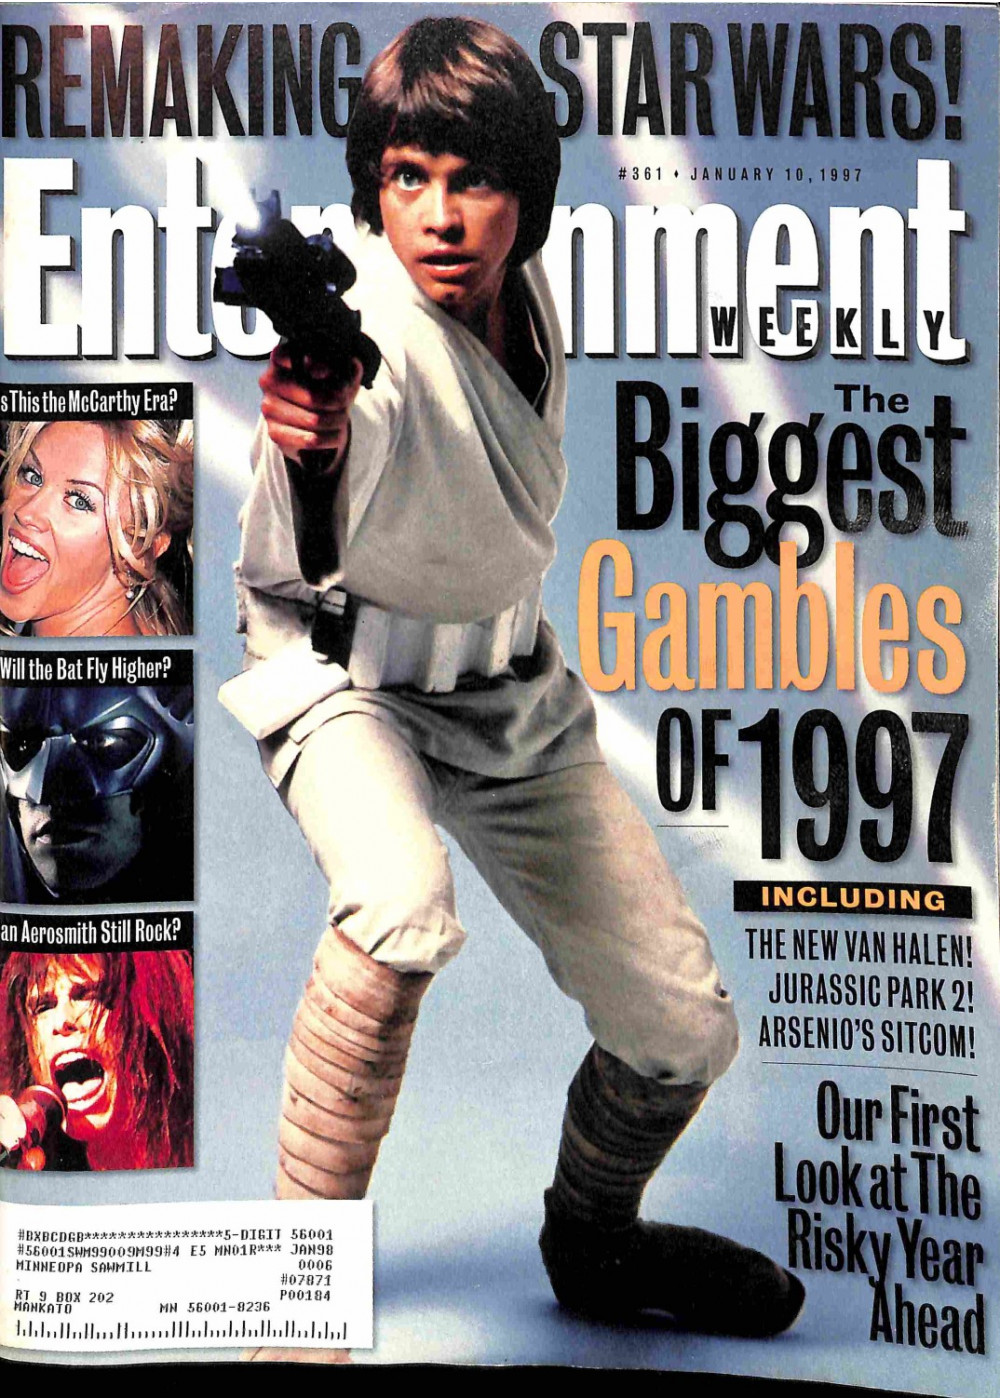 Entertainment Weekly January 10, 1997